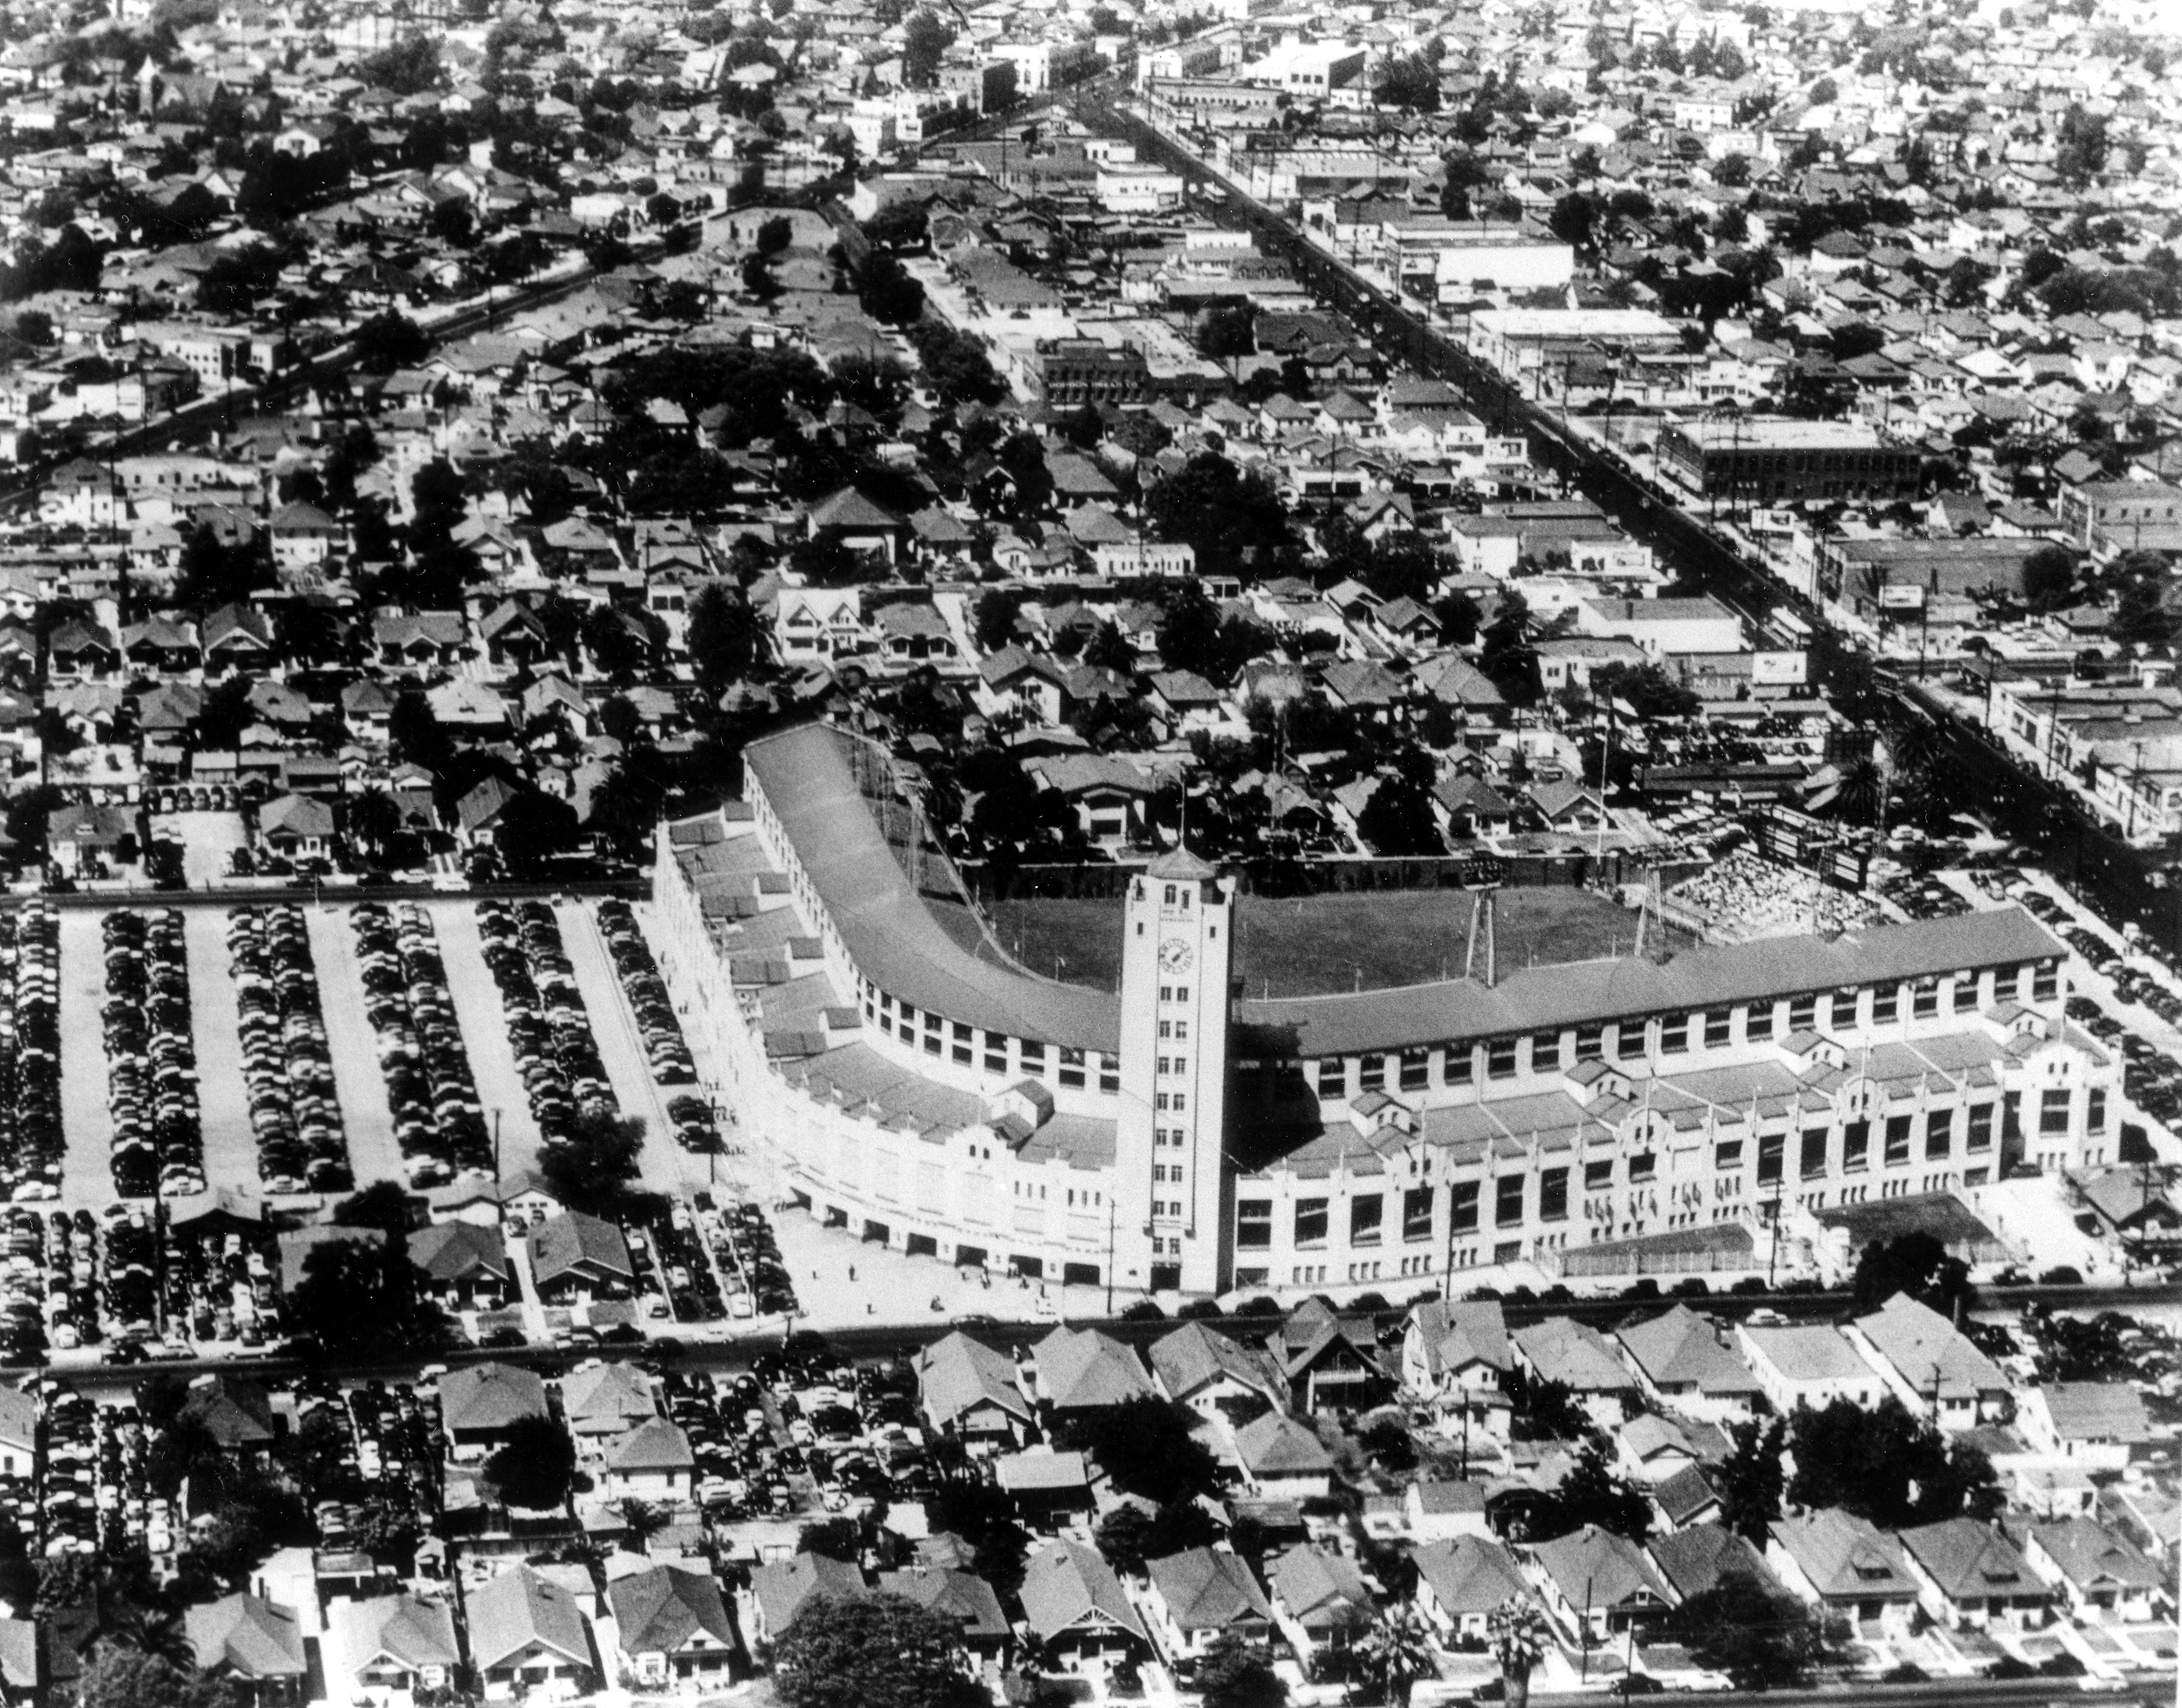 This March 21, 1961, file photo, shows an aerial view of Wrigley Field baseball stadium  in Los Angeles. Far less famous than its namesake stadium in Chicago, this was another minor-league park that was temporary home for the expansion Los Angeles Angels